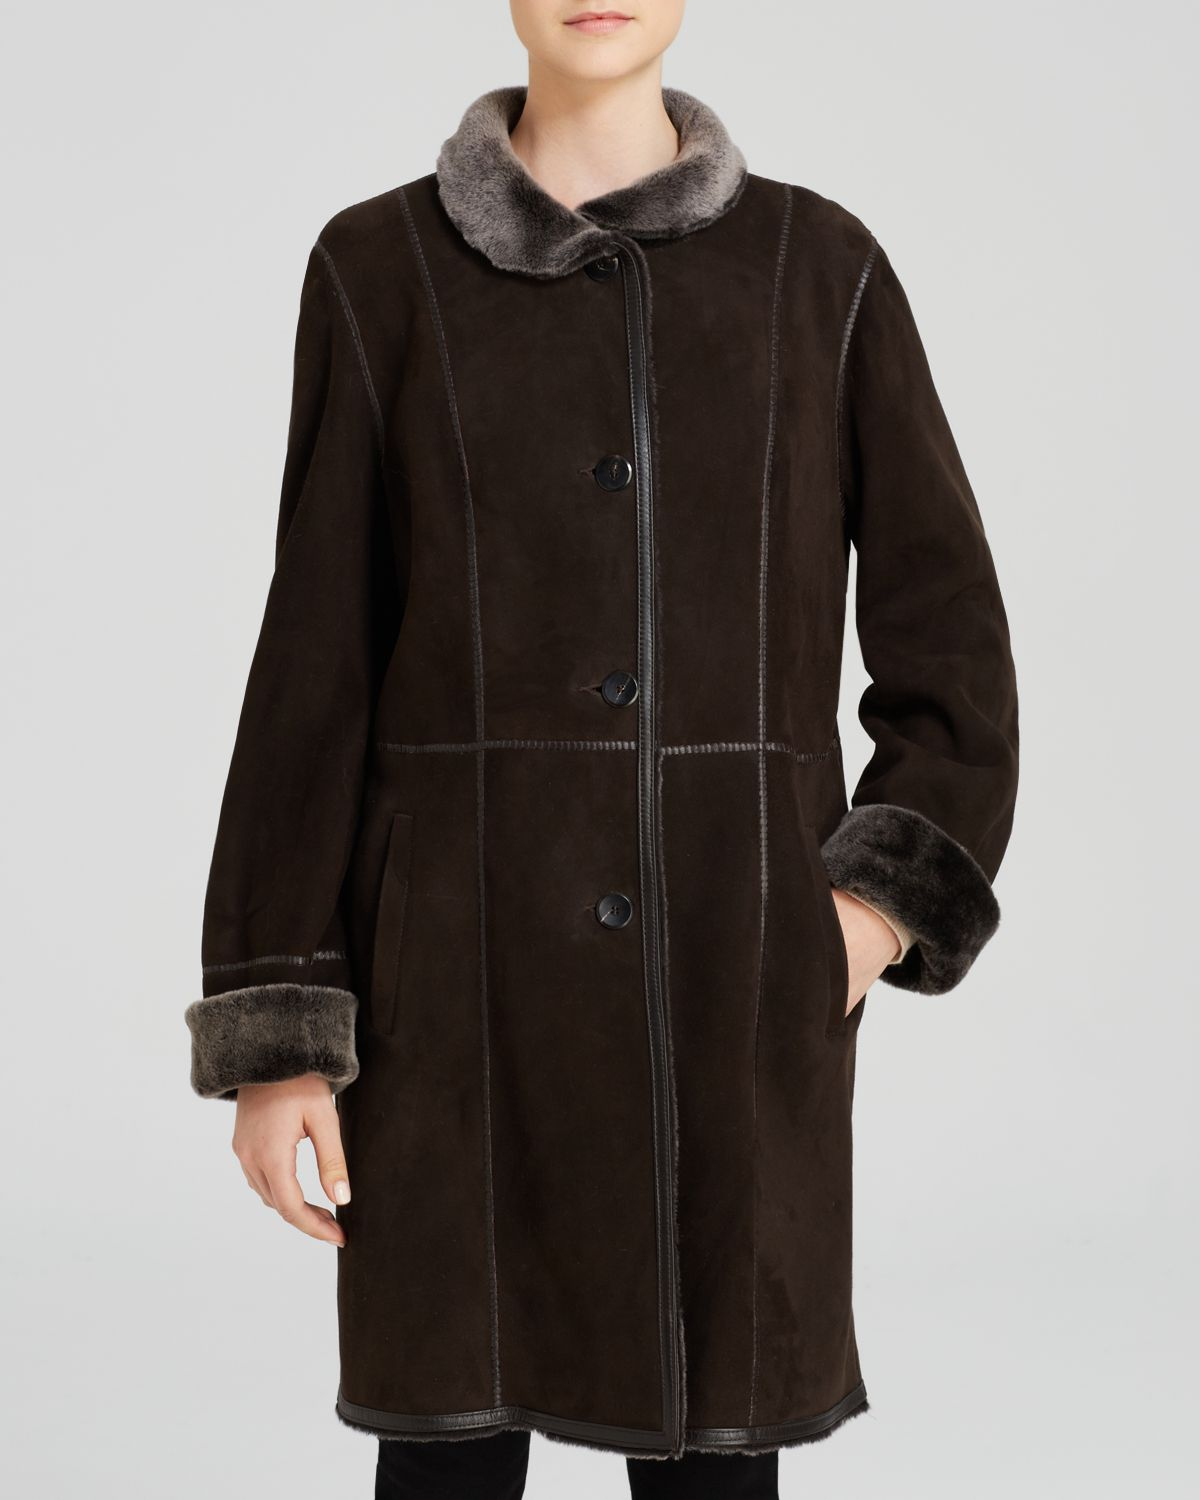 Maximilian Stand Collar Lamb Shearling Coat With Leather Trim in